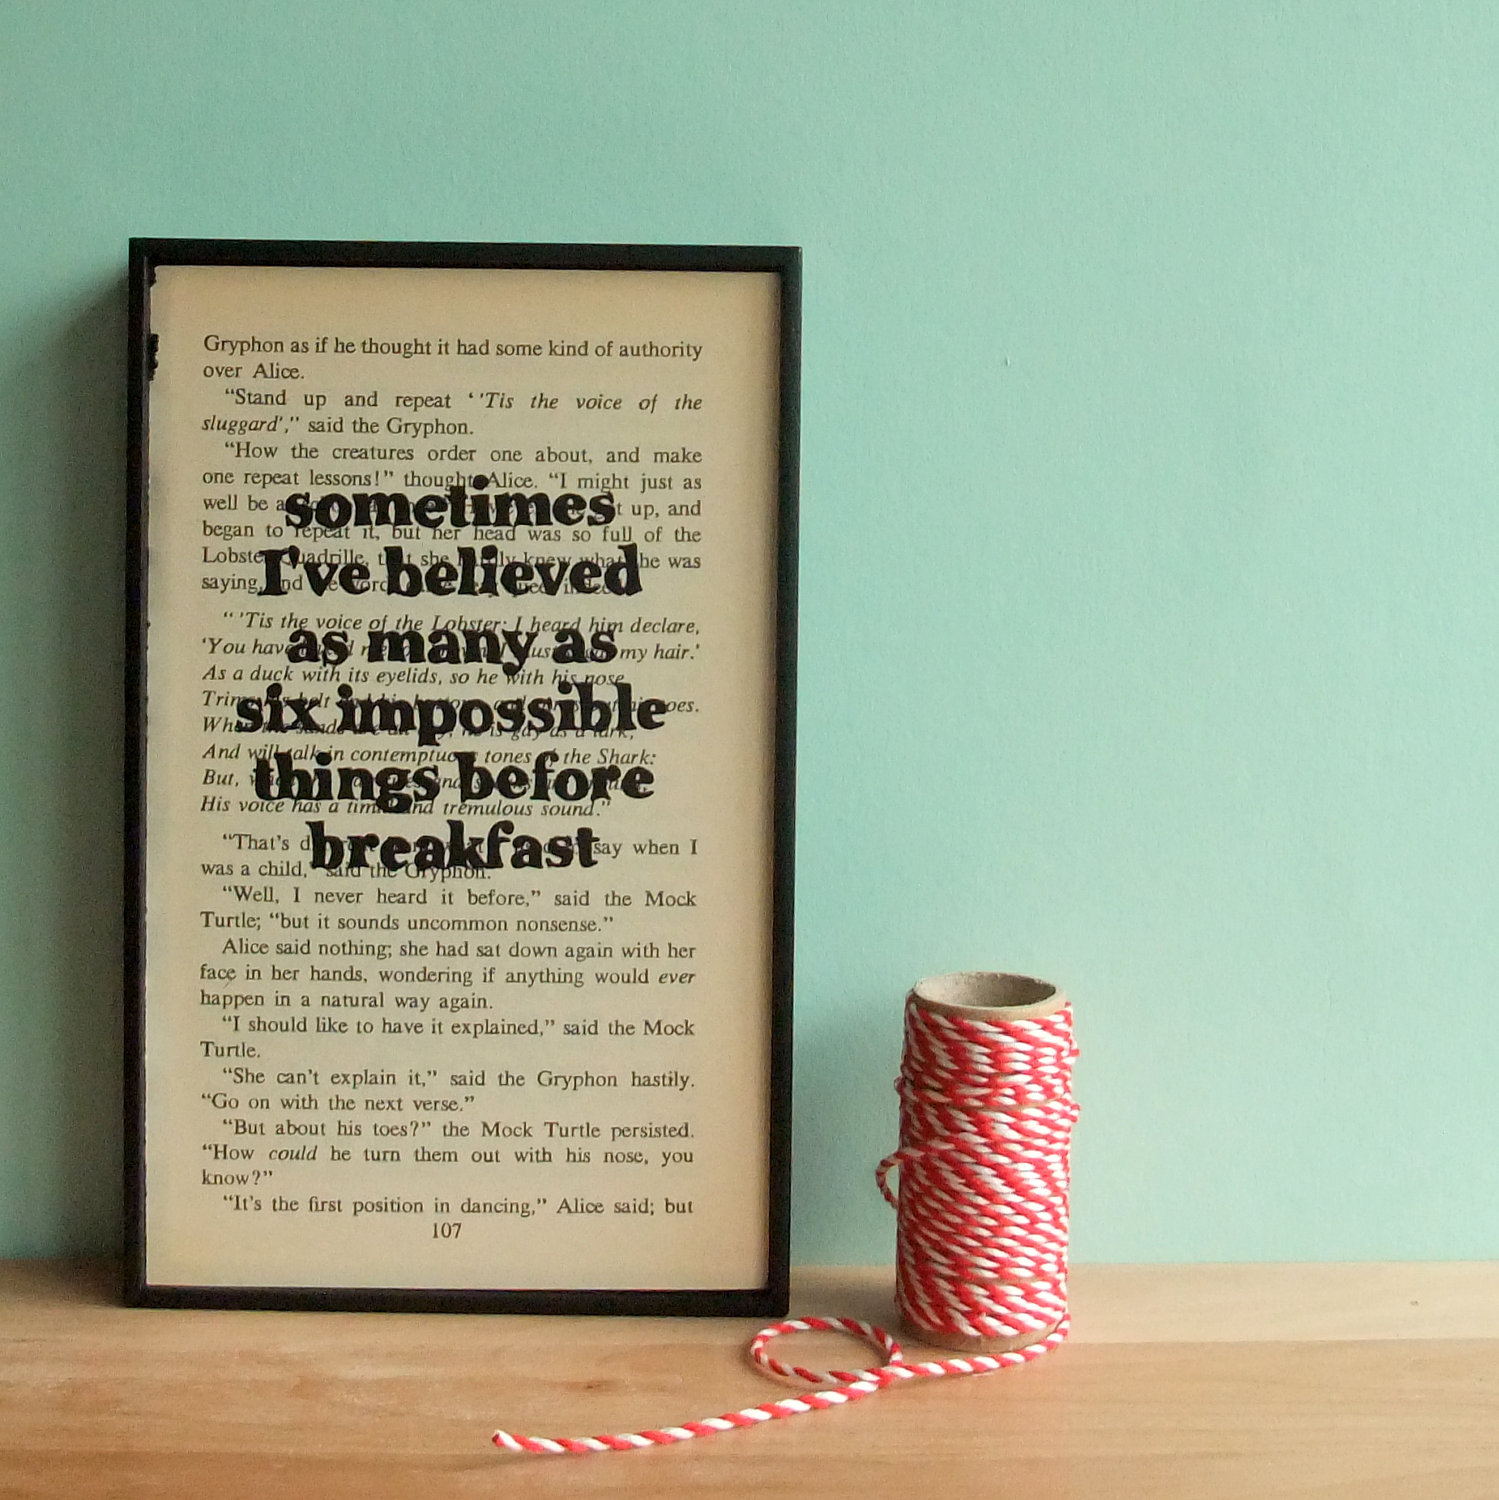 Alice In Wonderland Book Quotes: Alice In Wonderland Quote On Framed Vintage Book Page